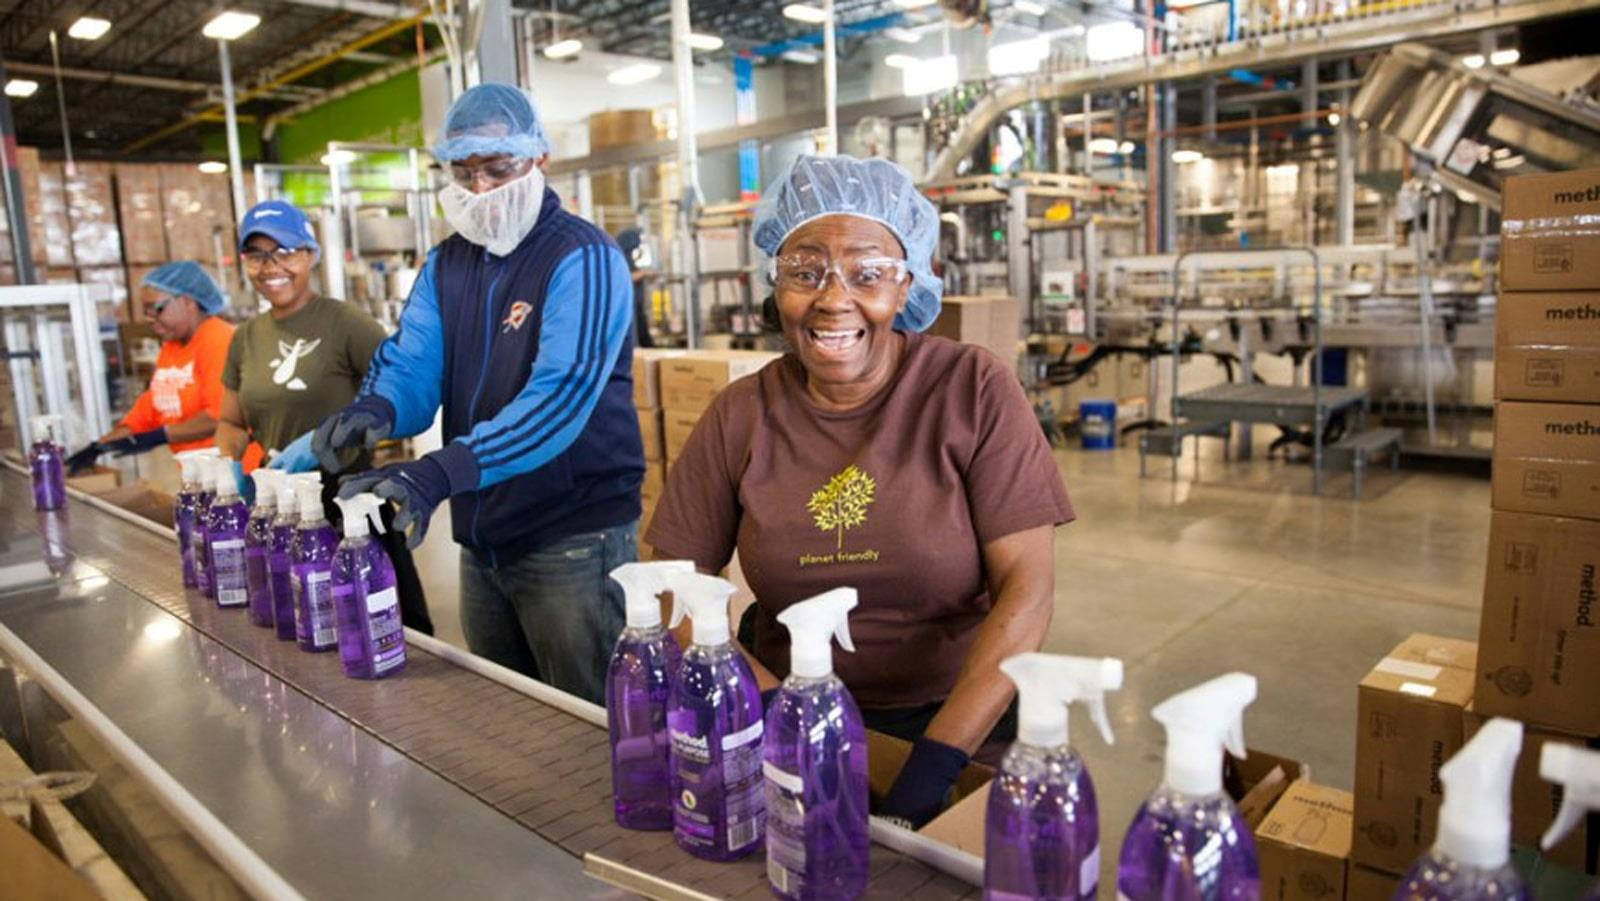 People wearing hairnet at assembly line with purple soap bottles